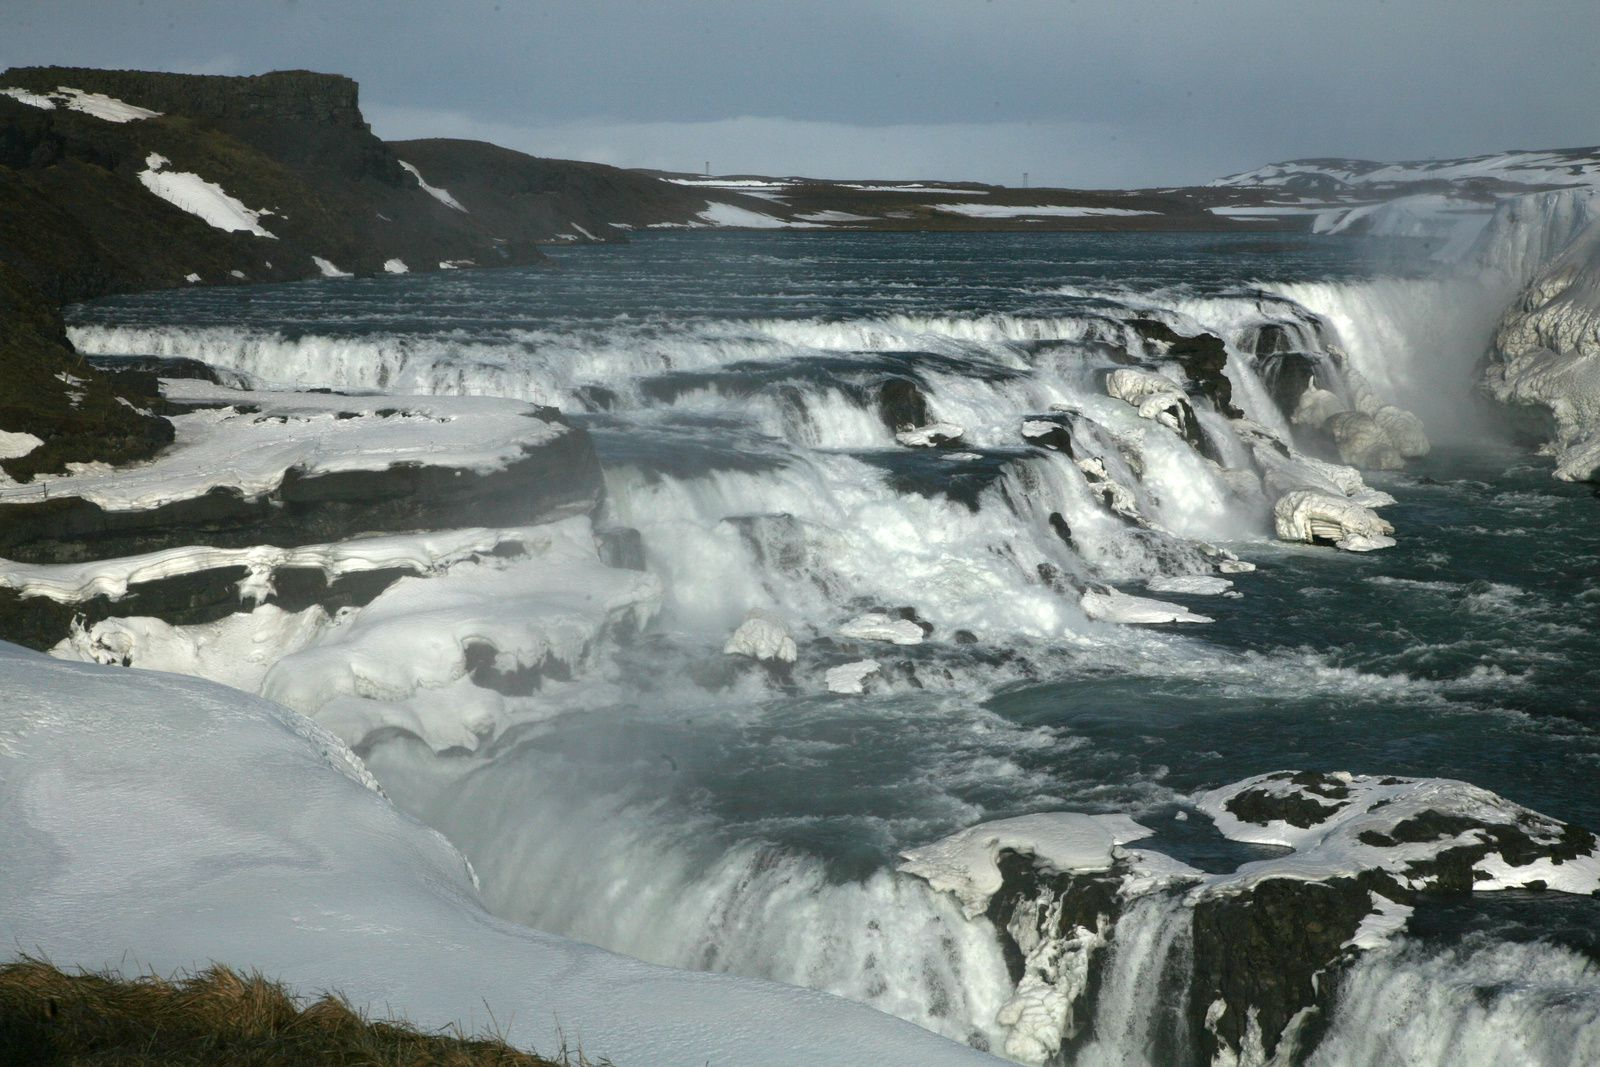 Gullfoss - the stairs down by the waters of Hvítá river - Photo © Bernard Duyck 2015